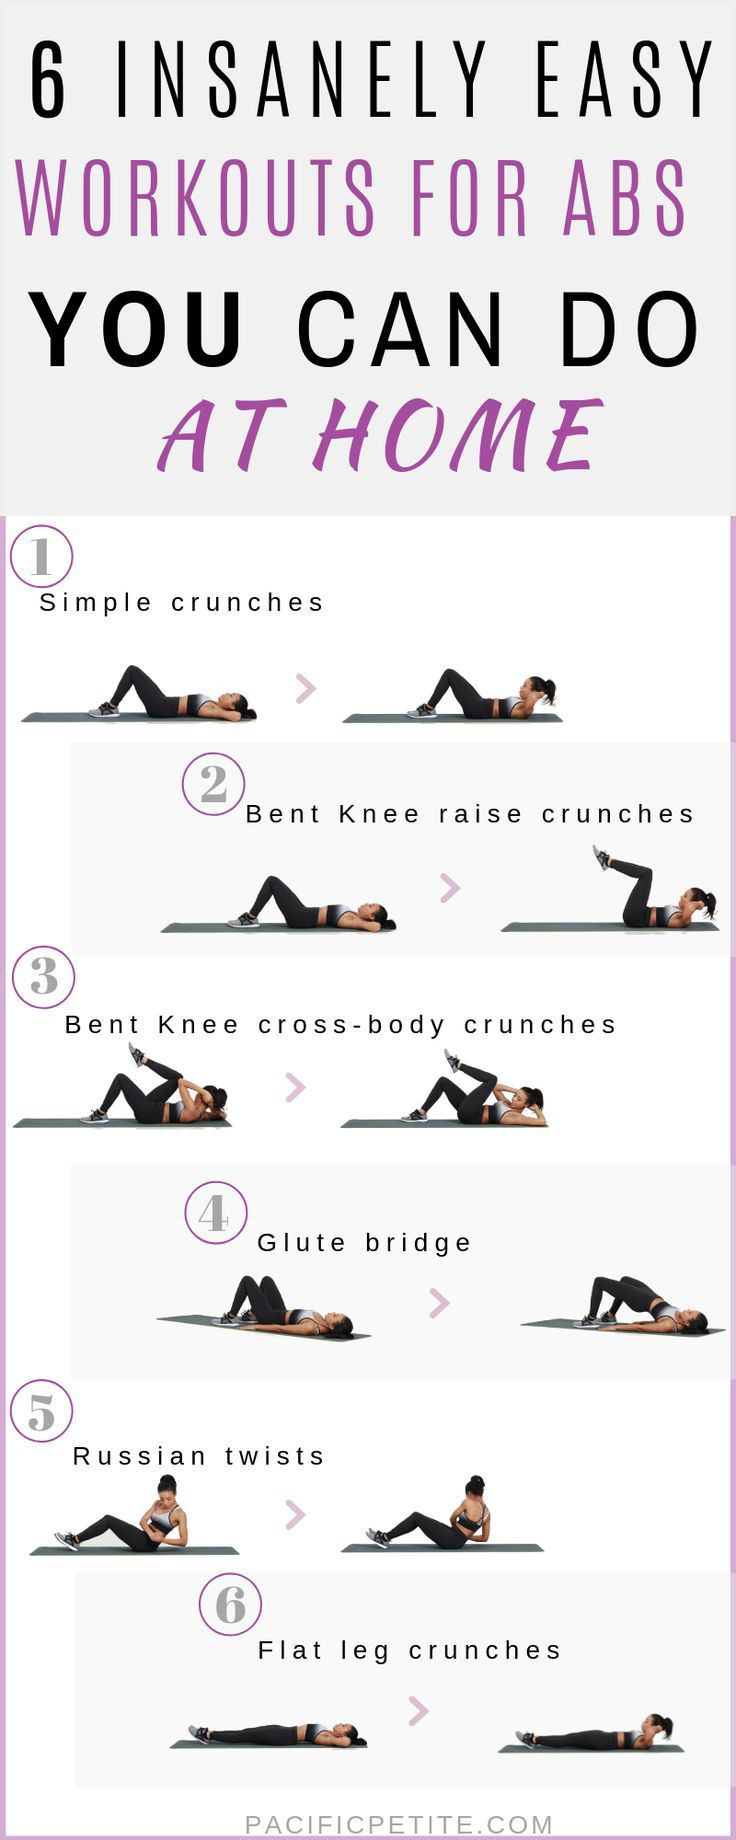 Easy at home workouts for abs you can do without going to the gym. Build muscle and tone in the core...